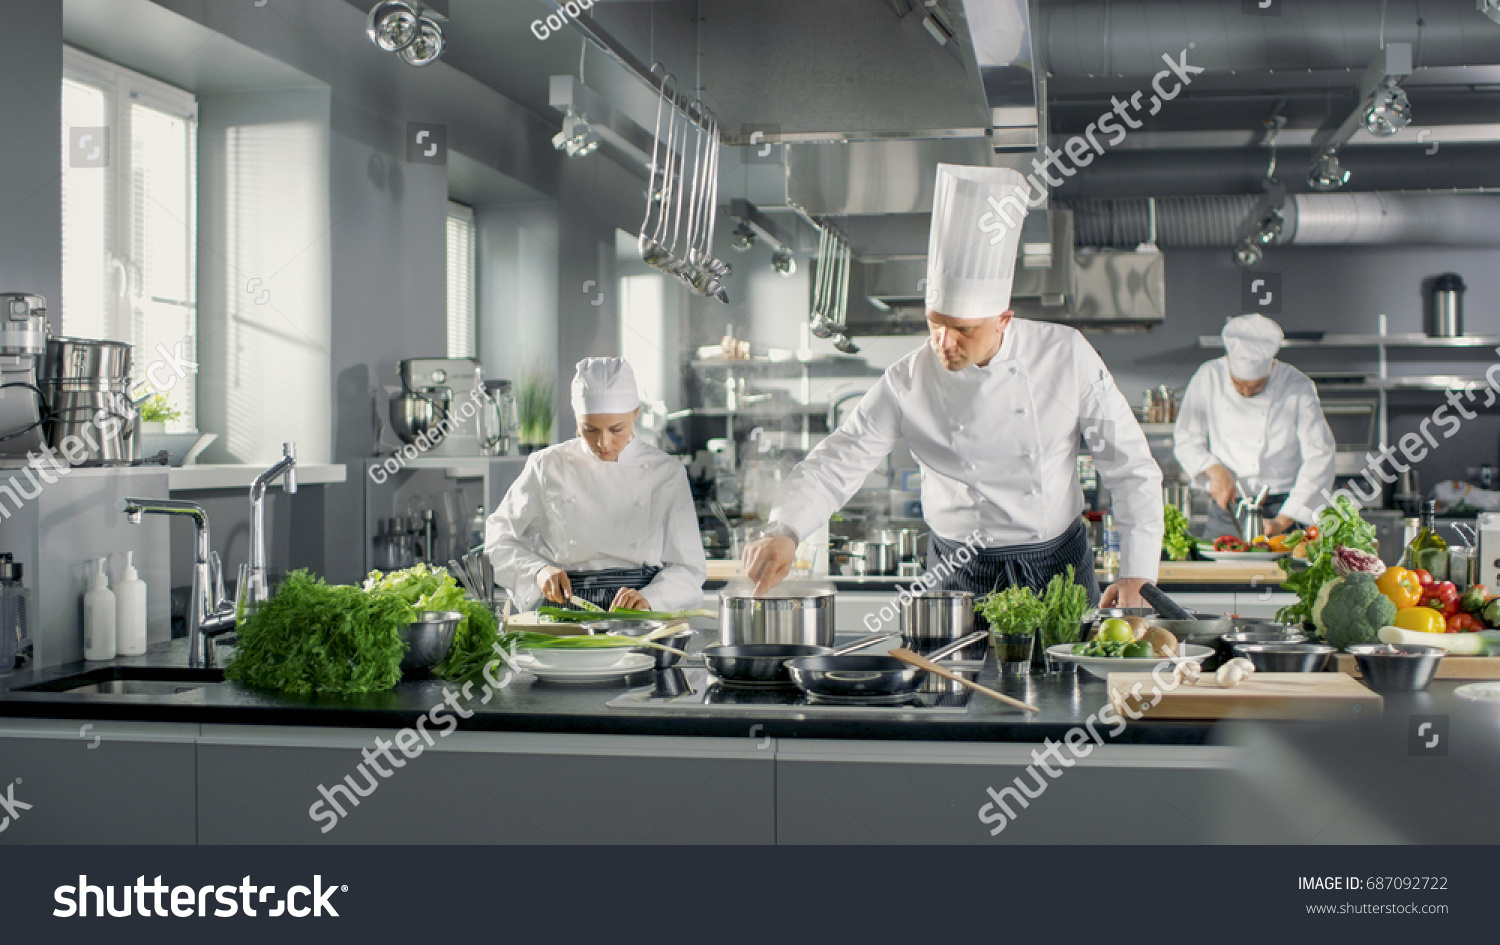 picture-of-a-chef-cooking